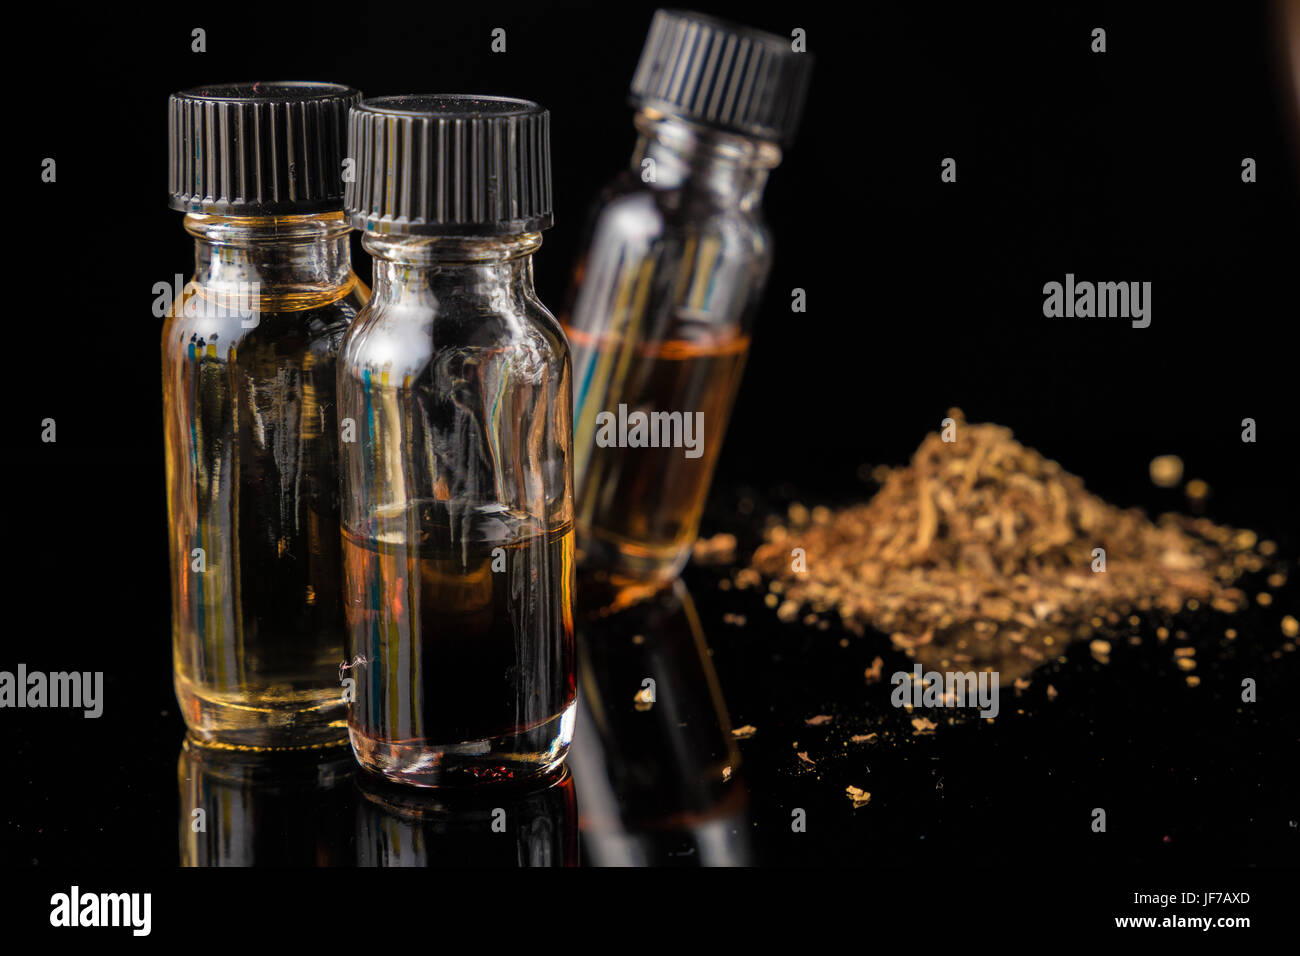 E-liquid bottles next to grinded tobacco leaves - Stock Image